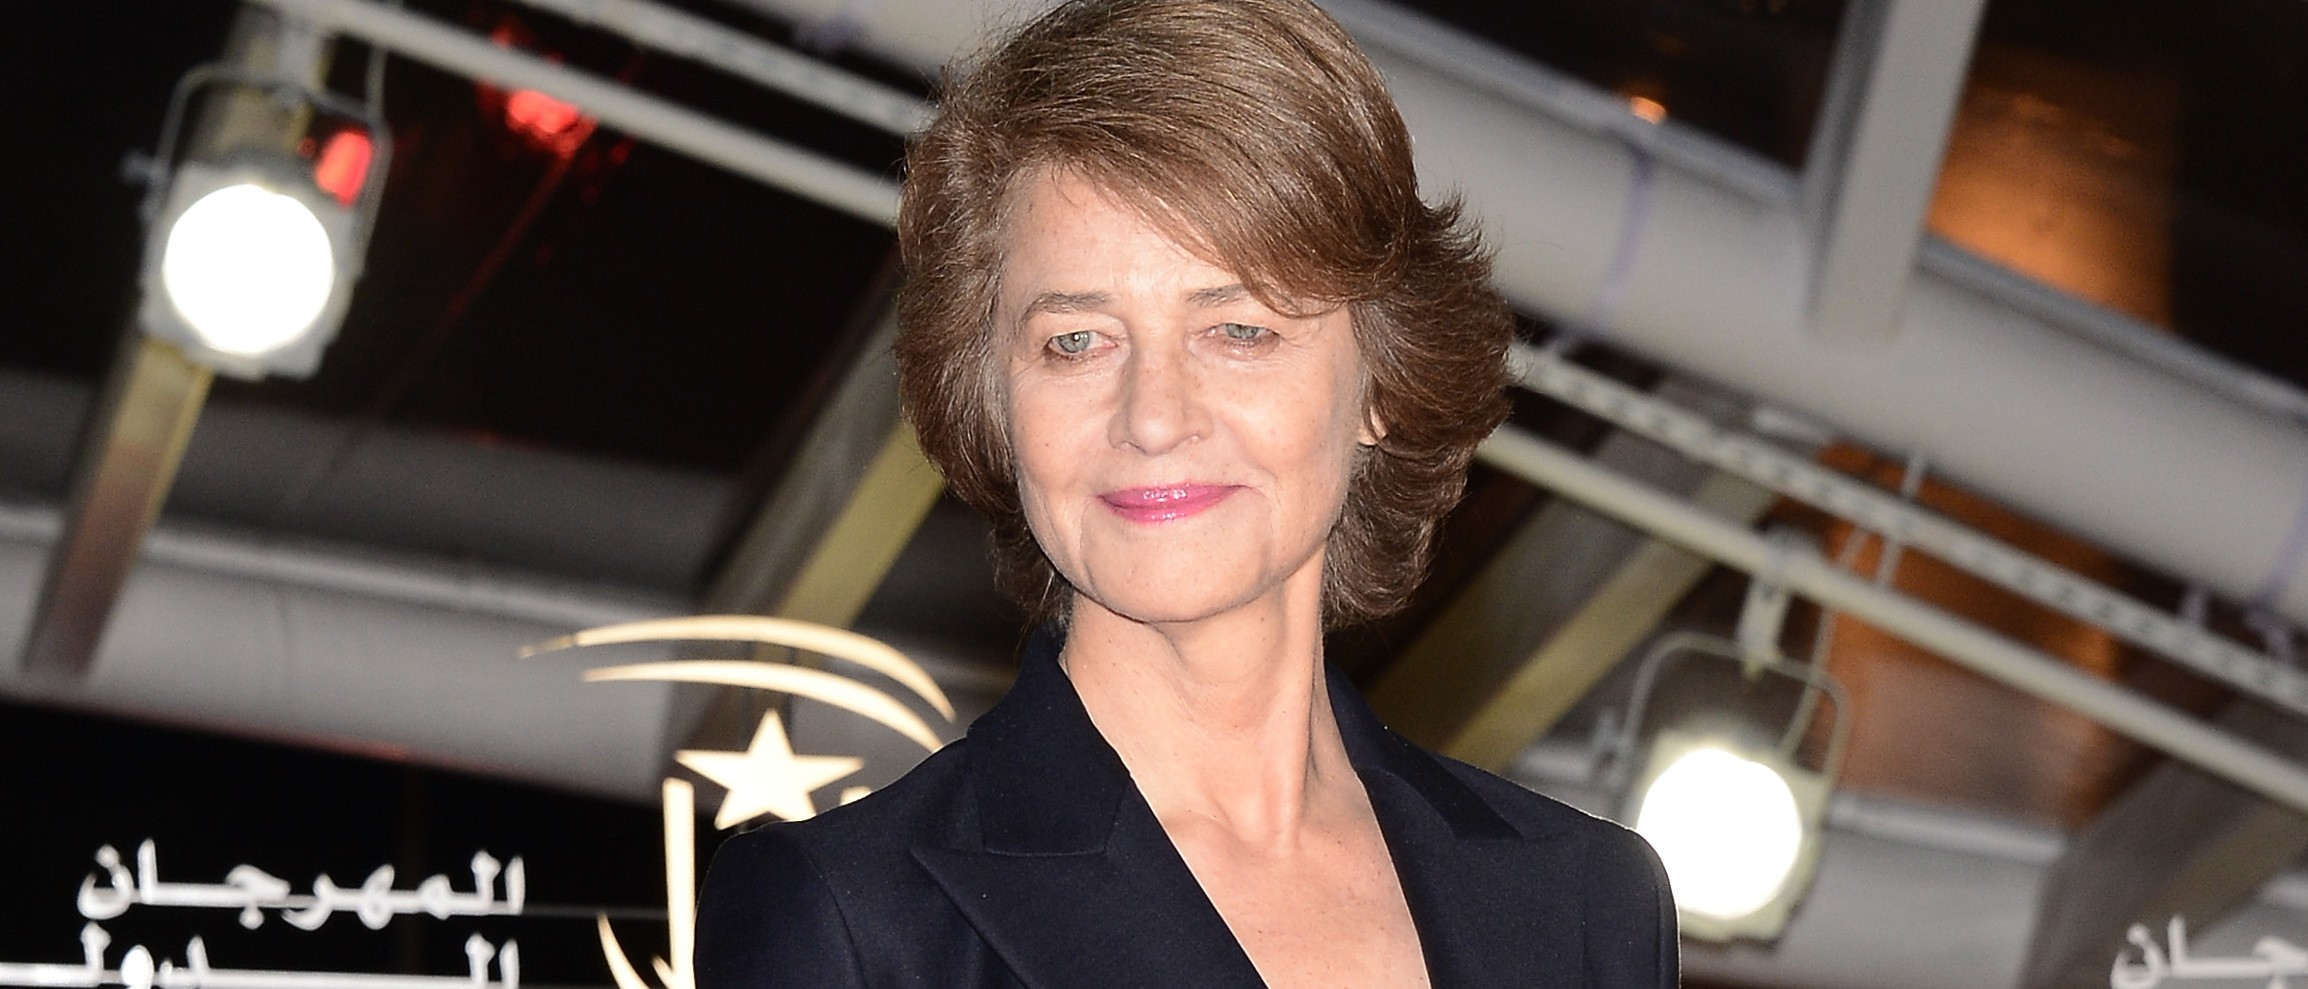 Charlotte Rampling comments on Oscars. (Photo: Getty Images)